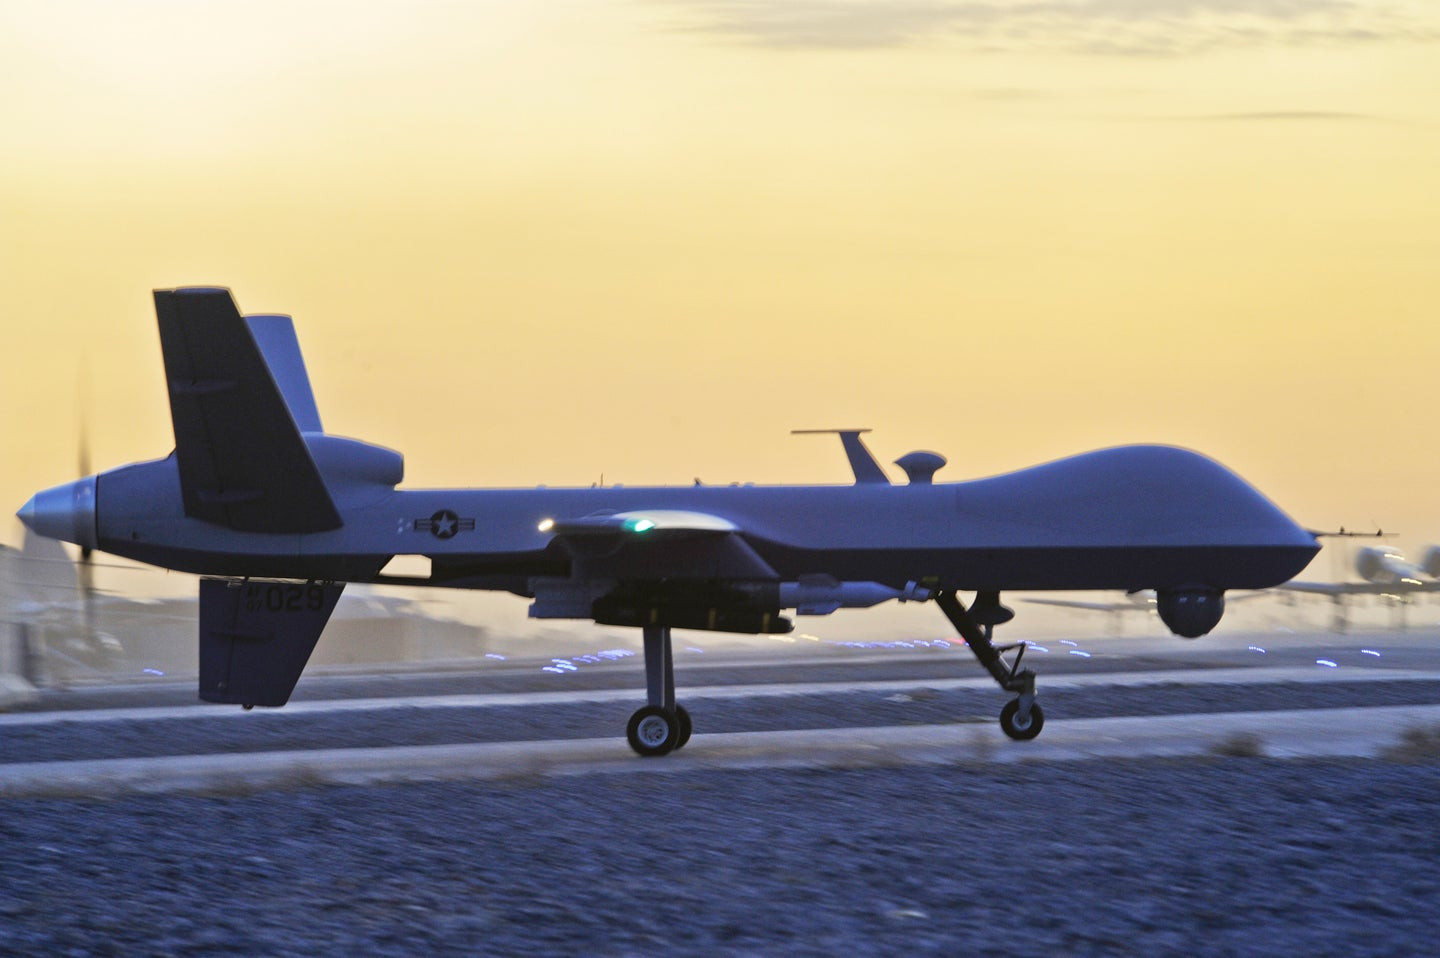 United States Will Sell Armed Drones To Other Nations